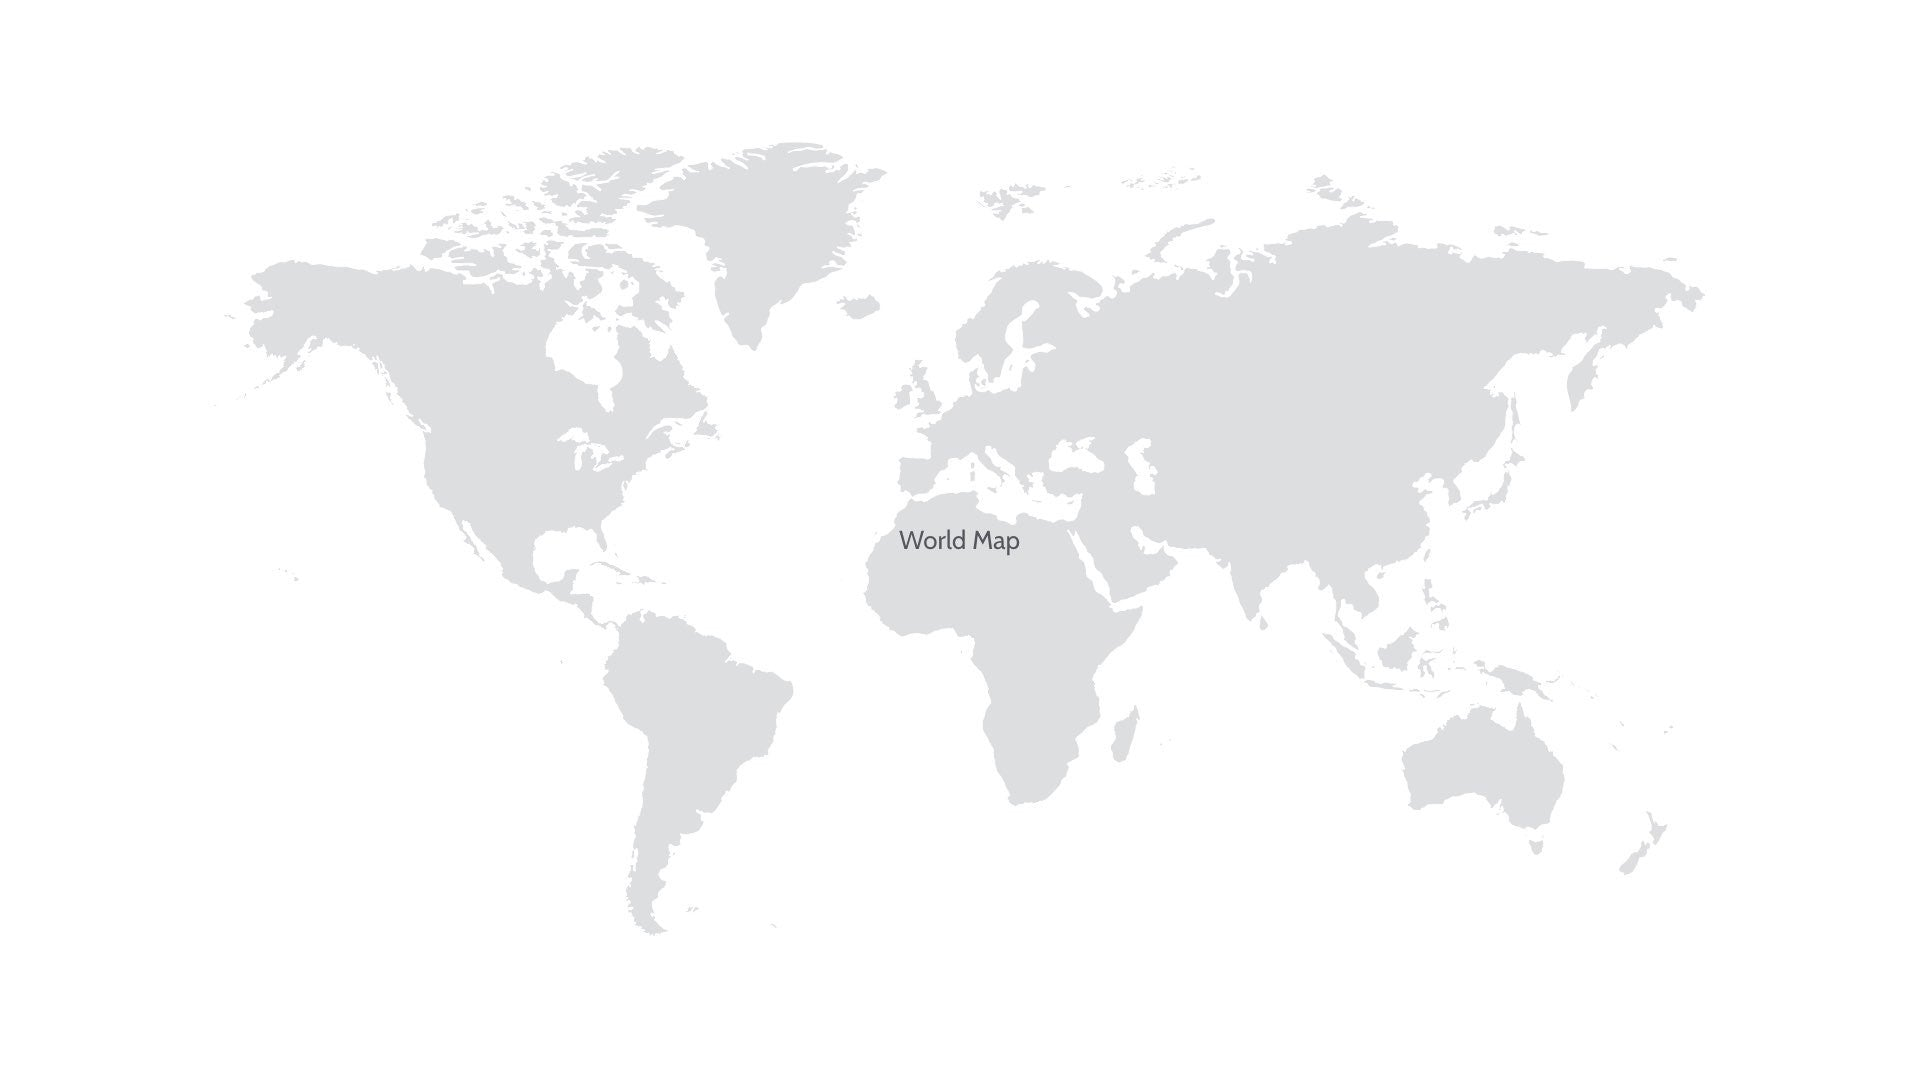 World Map For Powerpoint Keynote Presentation Shop